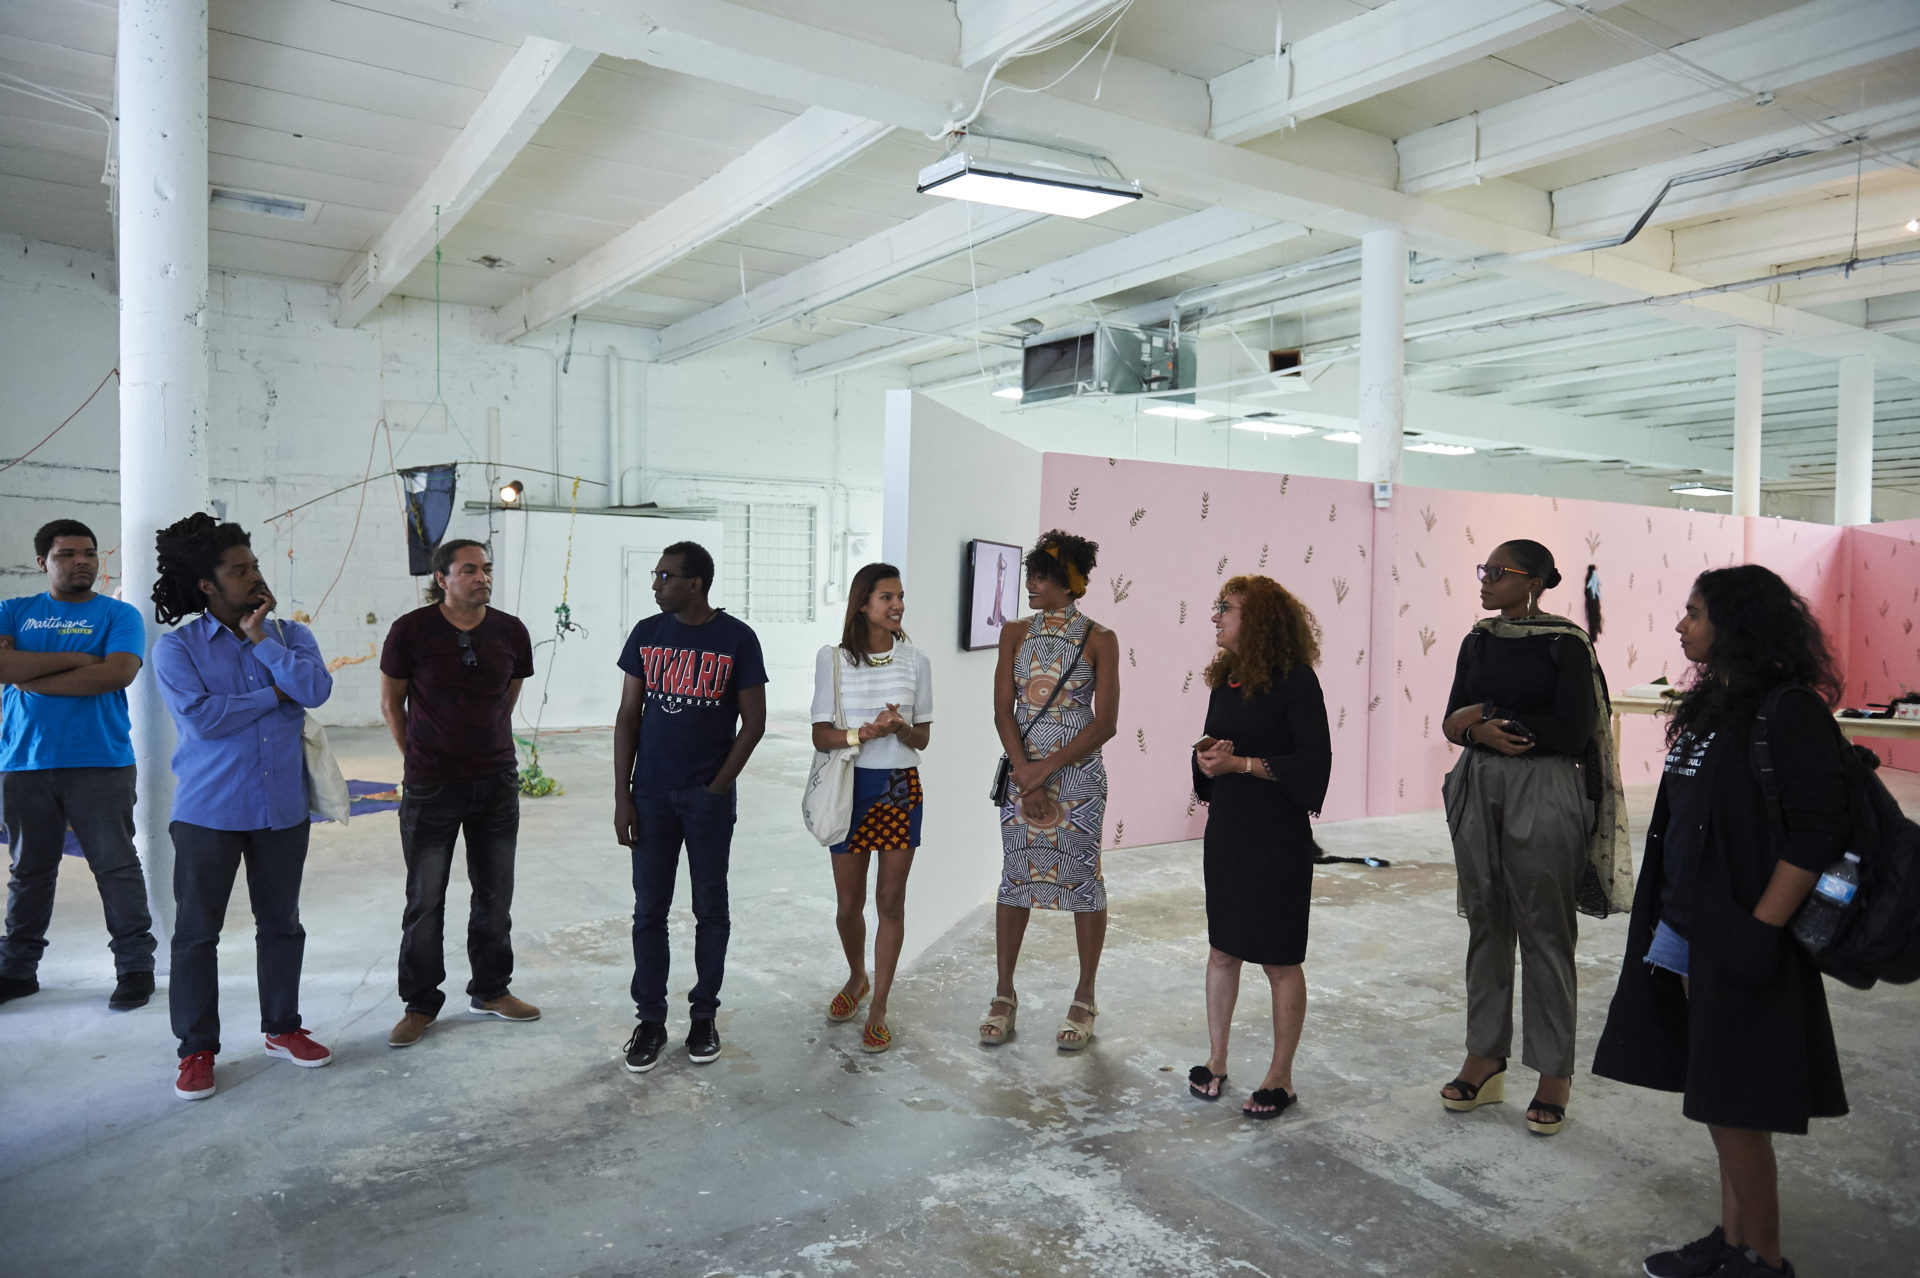 (second from left: Julien Creuzet, Robert Charlotte, Mirtho Linguet, Vanessa Selk, Claire Tancons, Johanna Auguiac, Shirley Ruffin, Kelly Sinappah Mary)